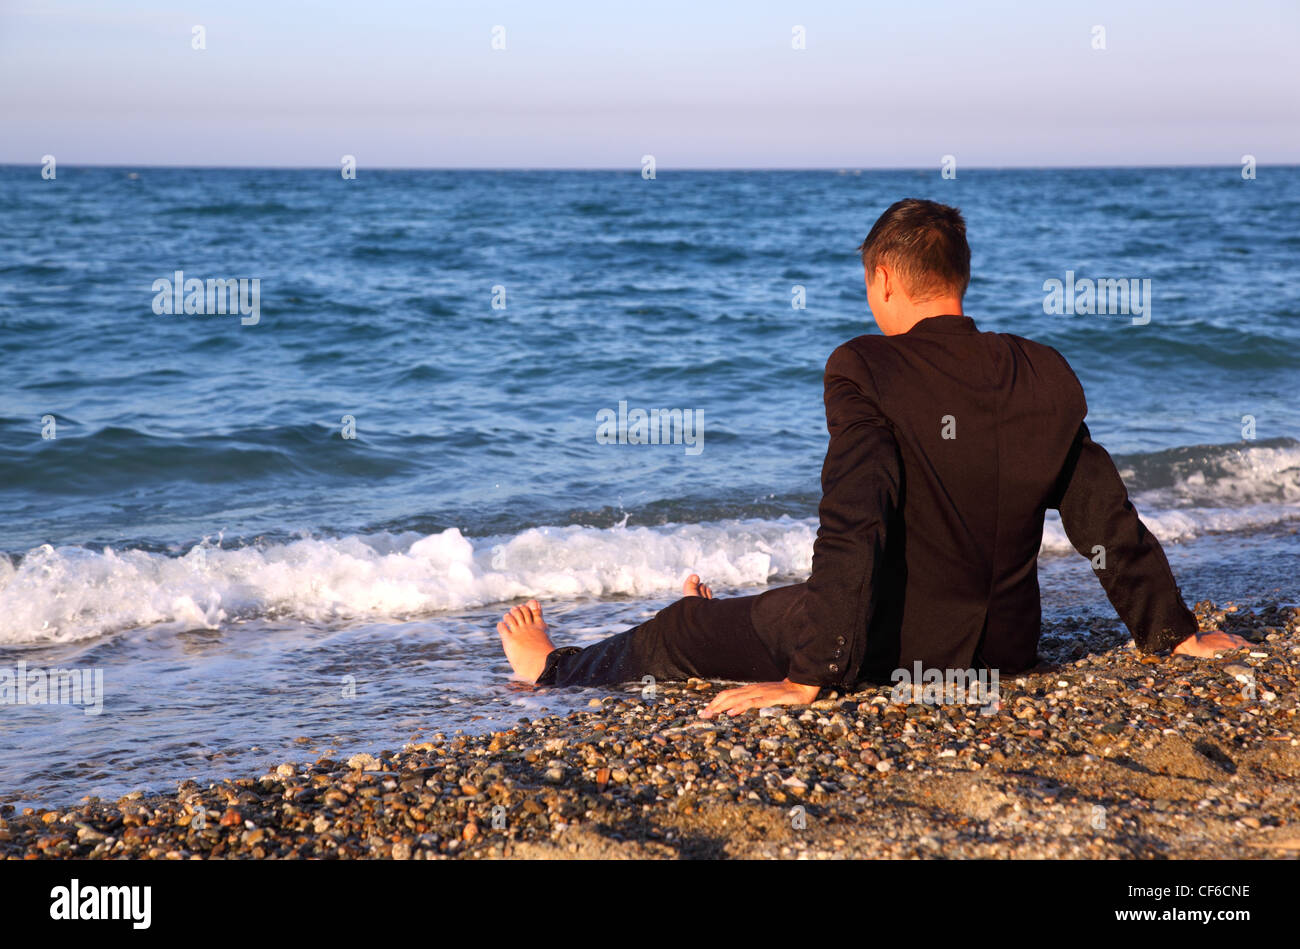 Barefooted man in business suit sits back on stone coast at evening - Stock Image